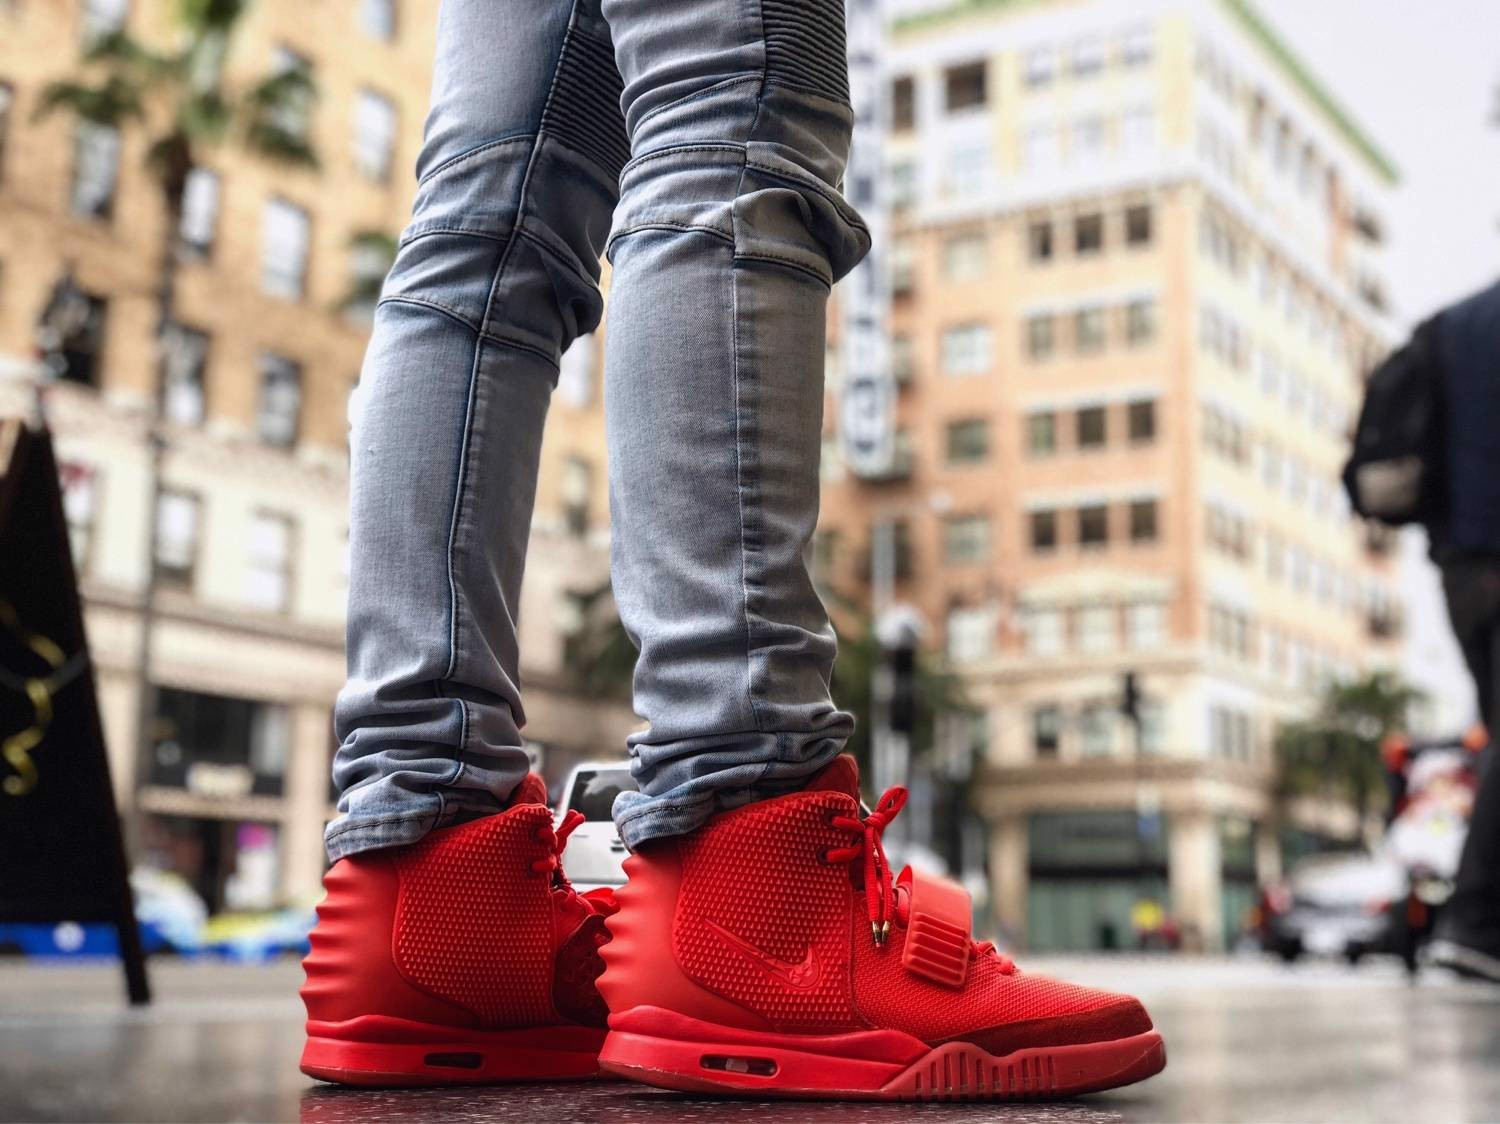 Nike Air Yeezy 2 SP 'Red October' 508214-660